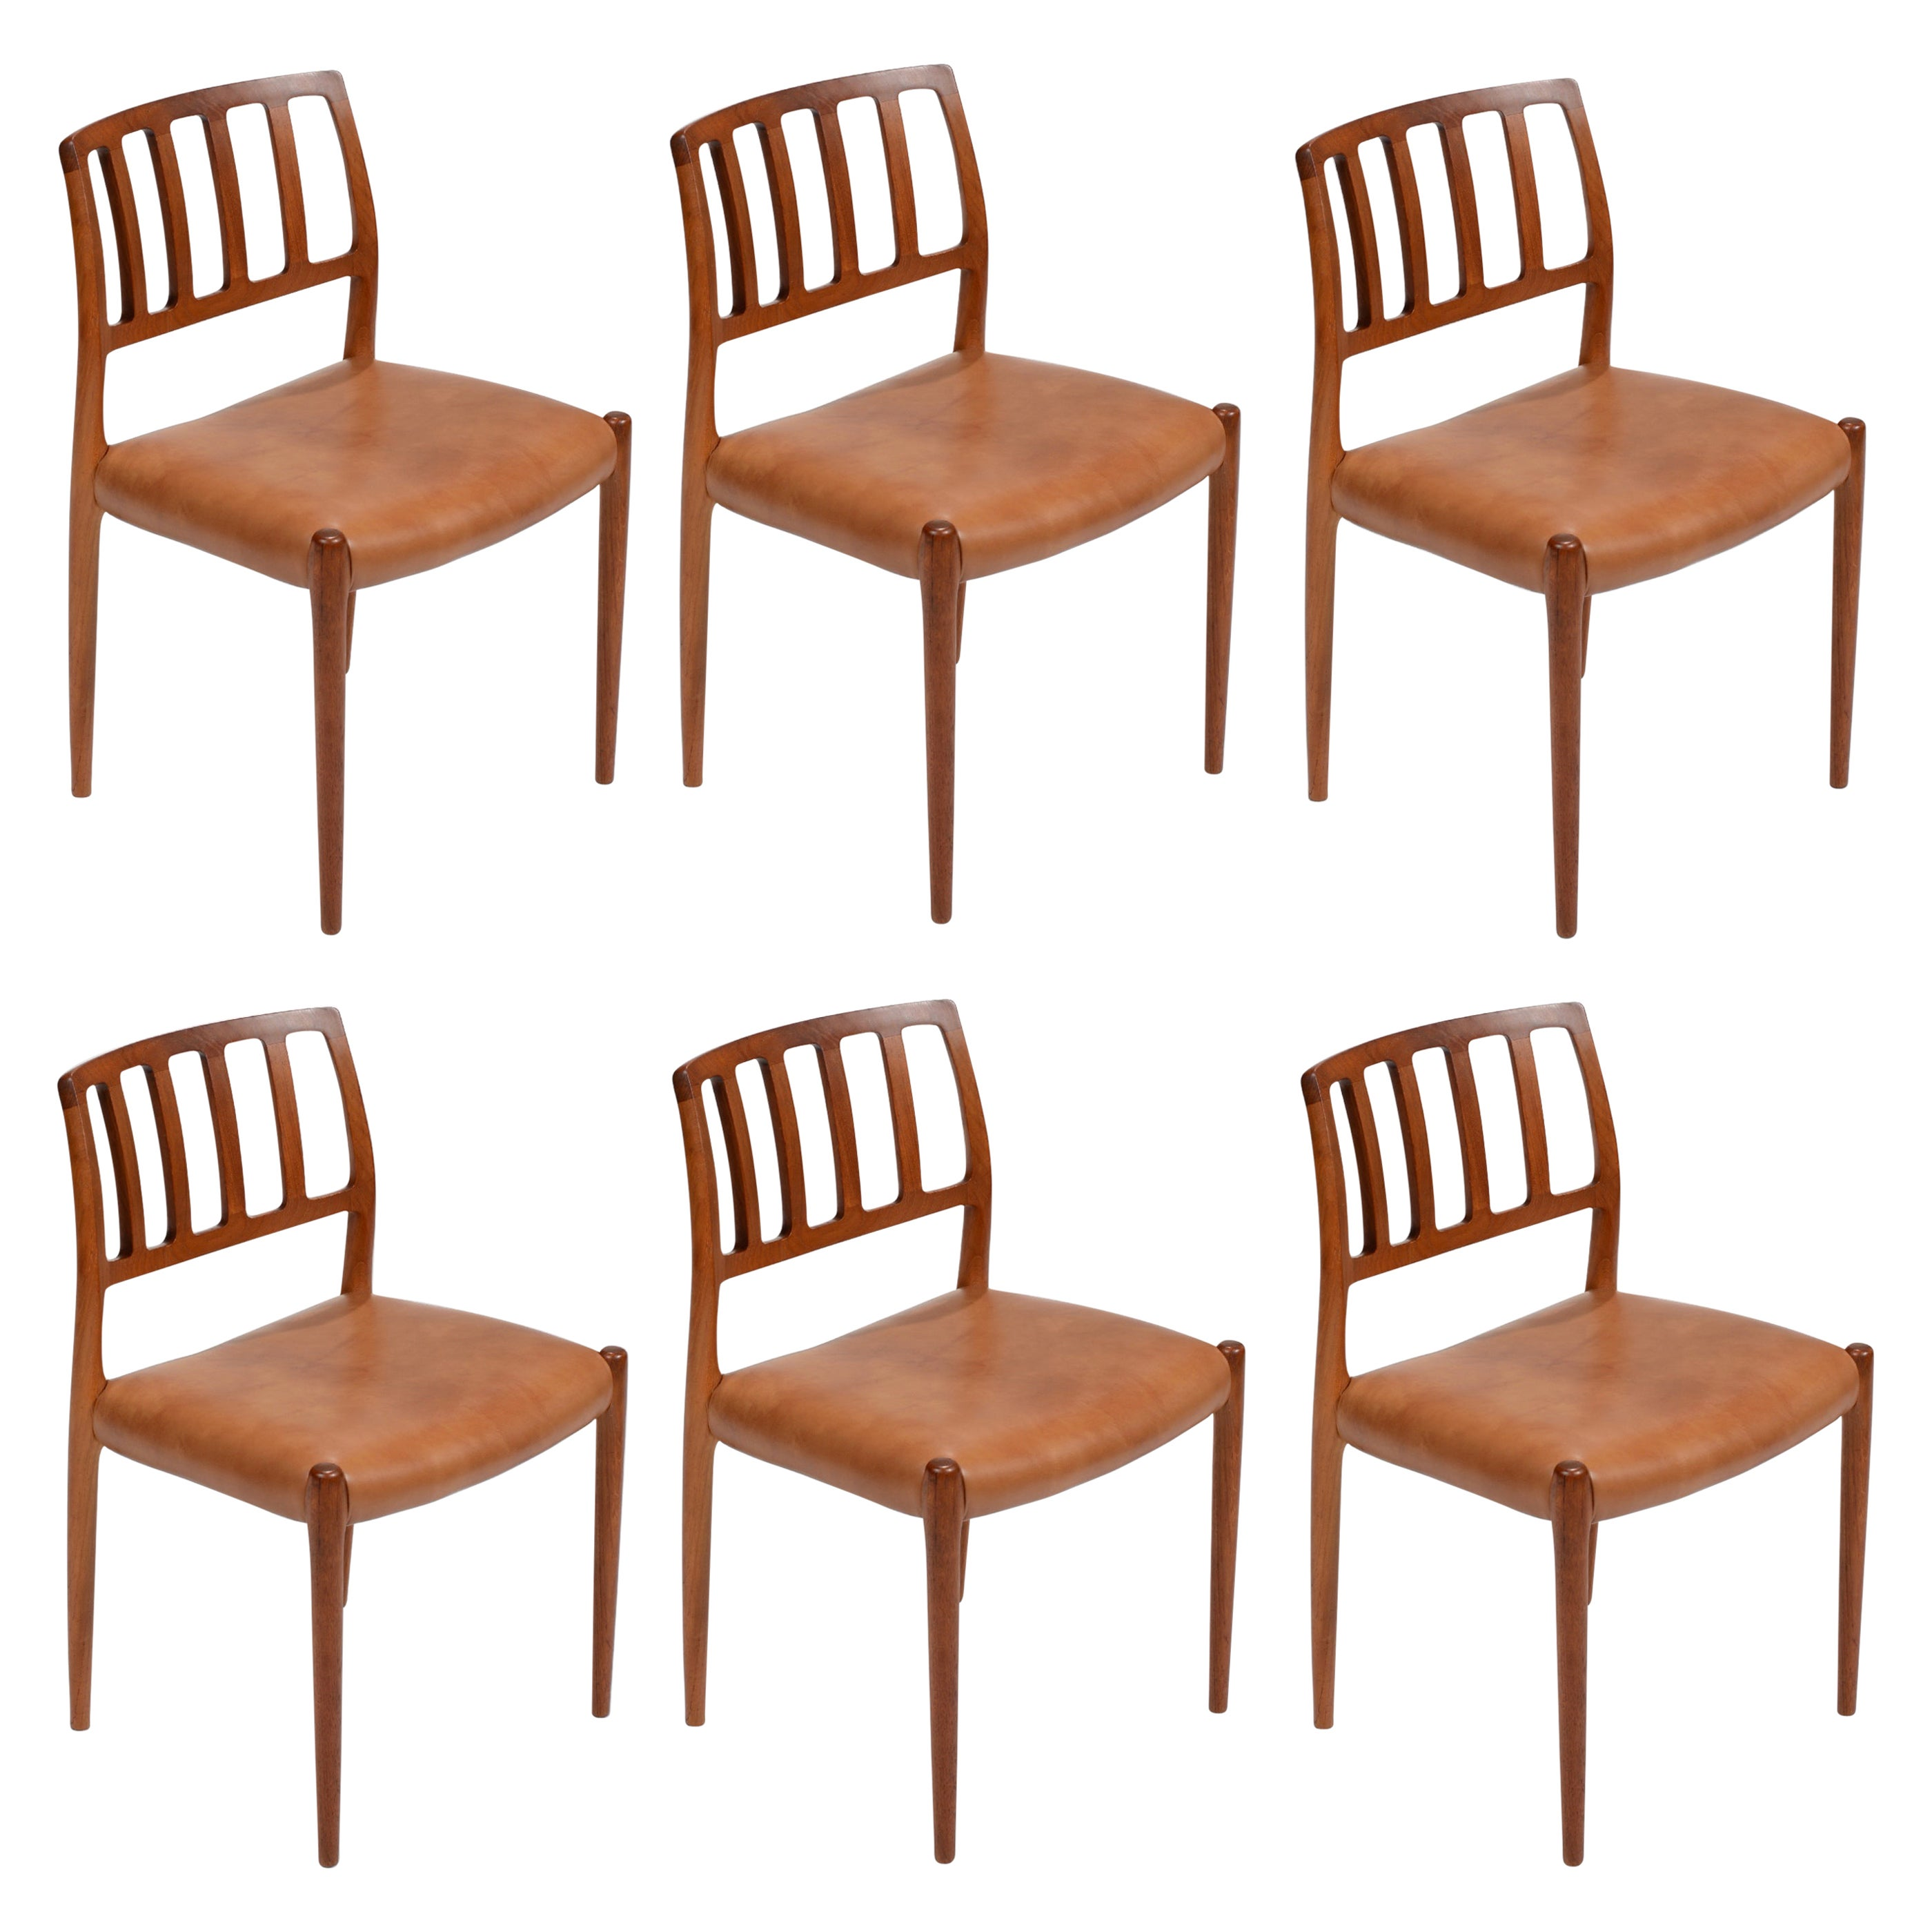 Niels Otto Møller Rosewood and Leather Dining Chairs, Model 83, Set of Six